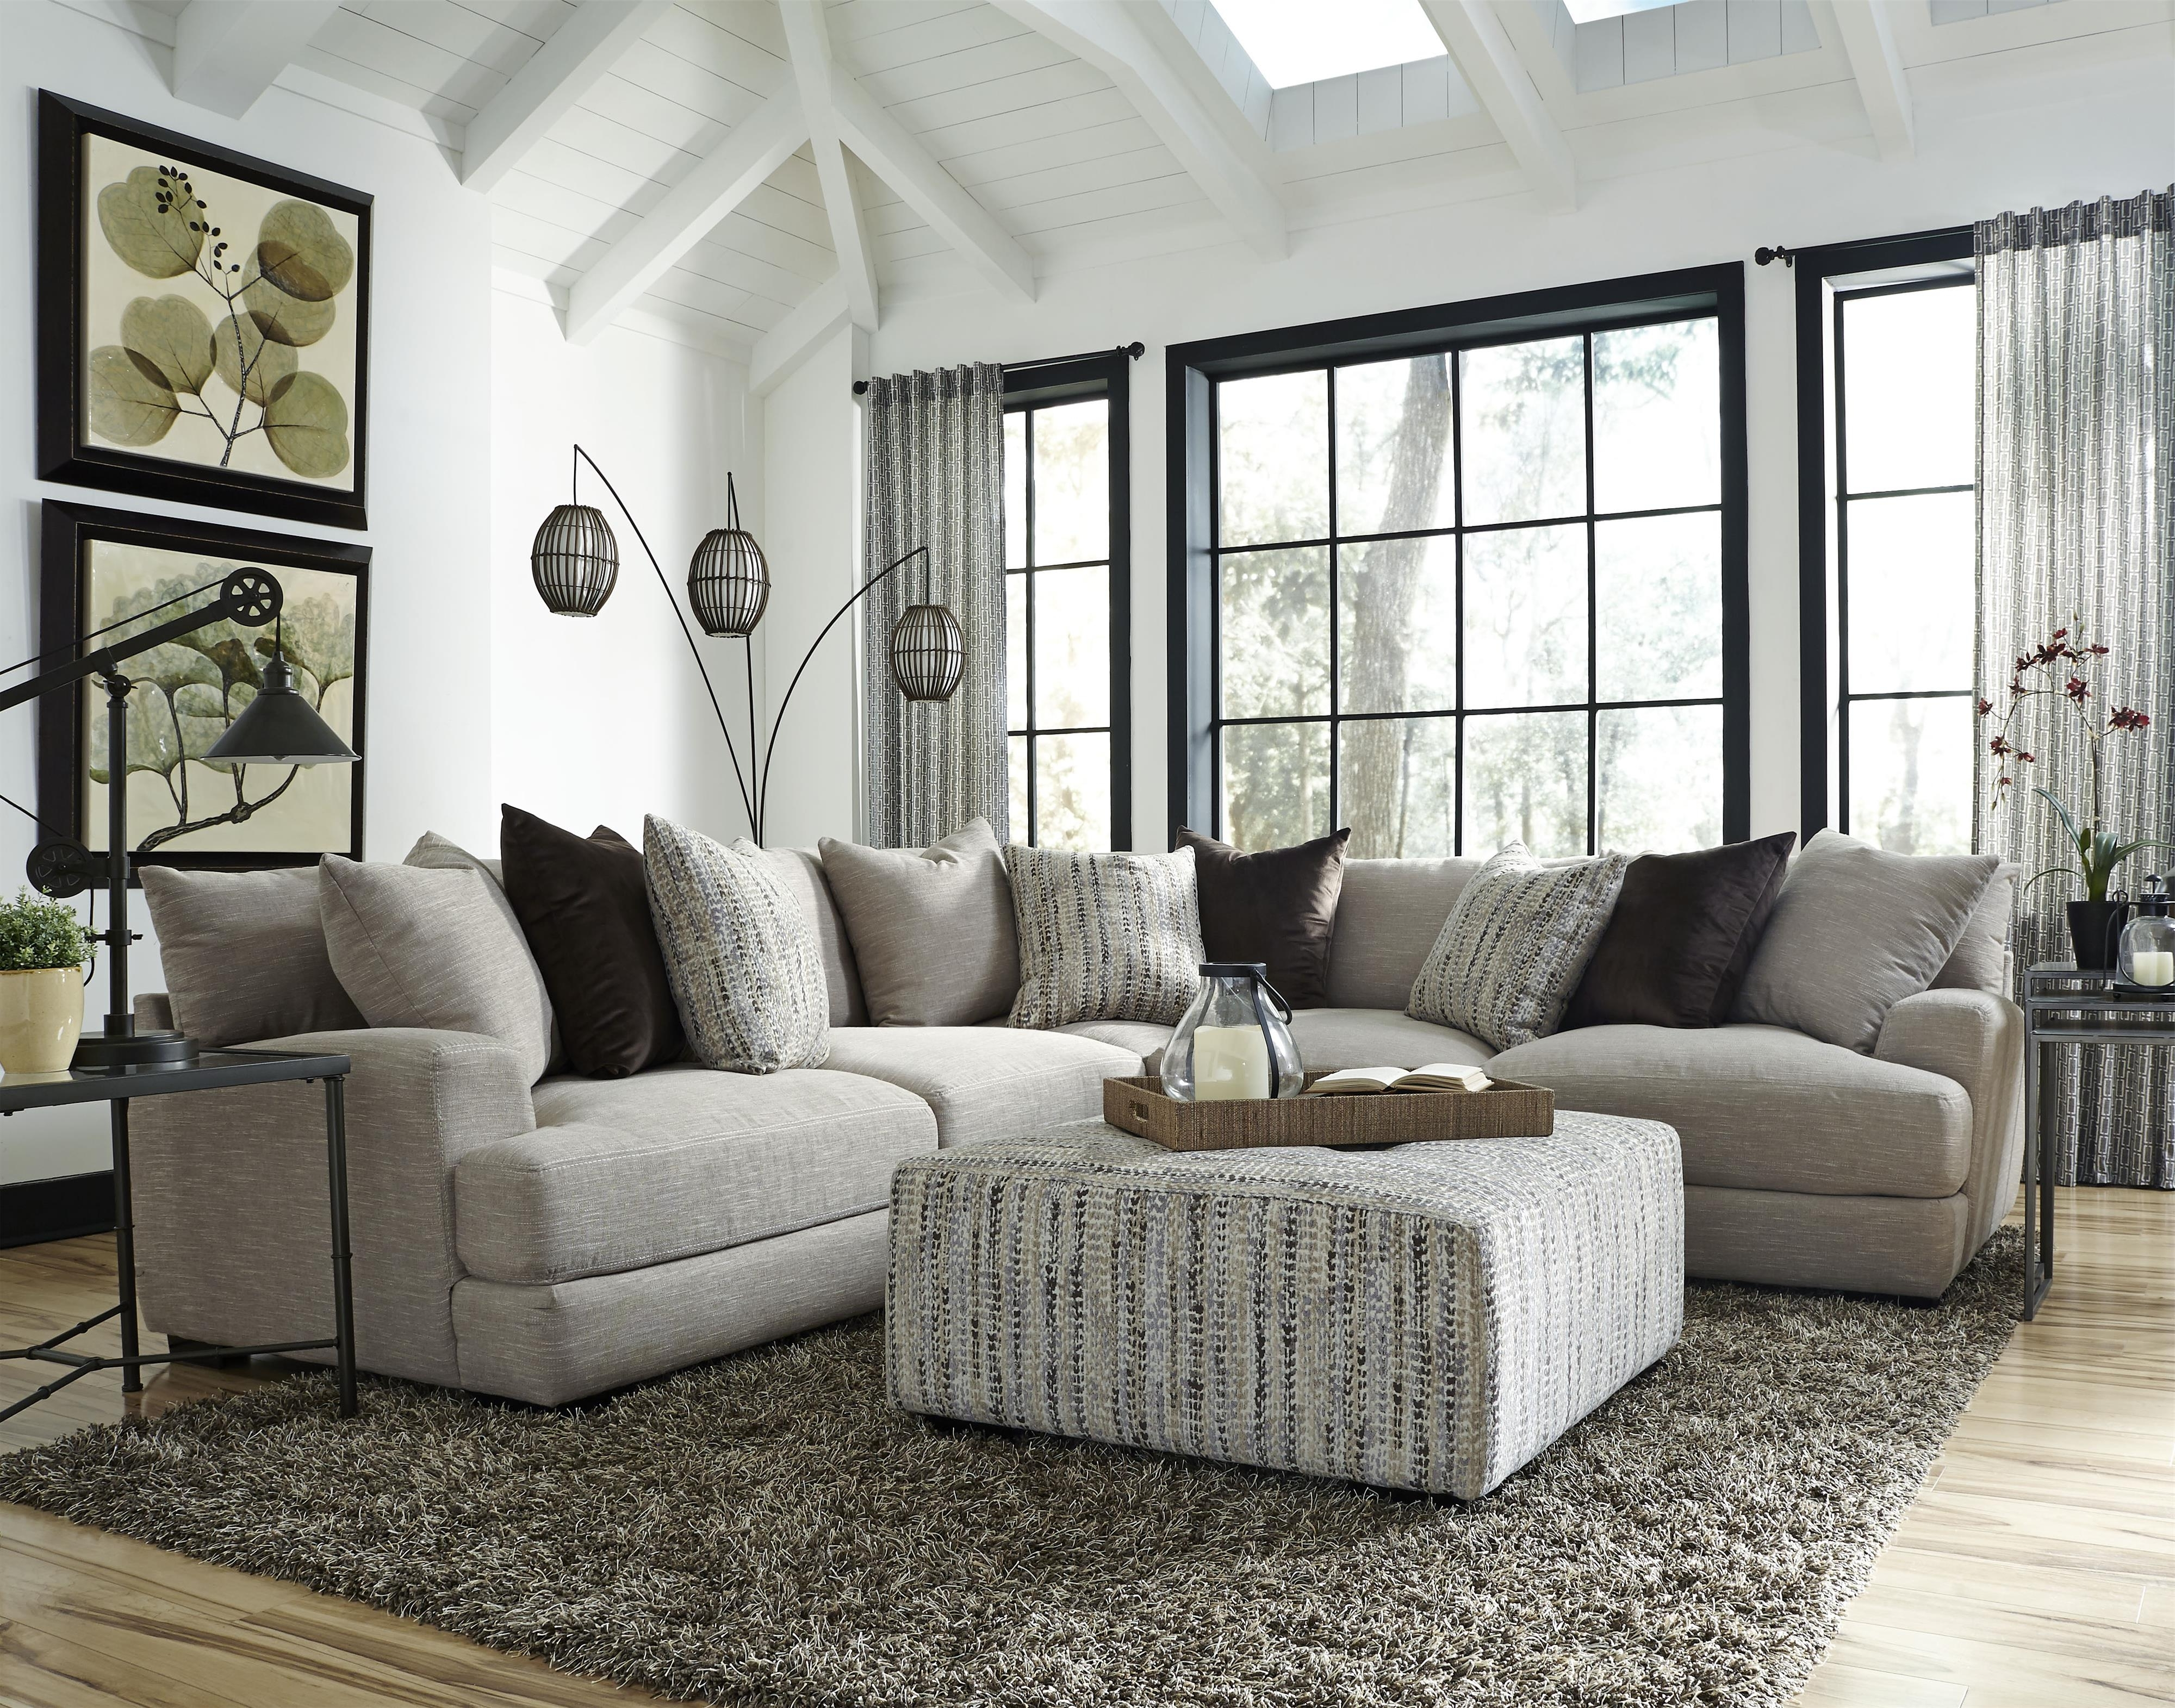 Miskelly Furniture Regarding Well Liked Jackson Ms Sectional Sofas (View 14 of 20)